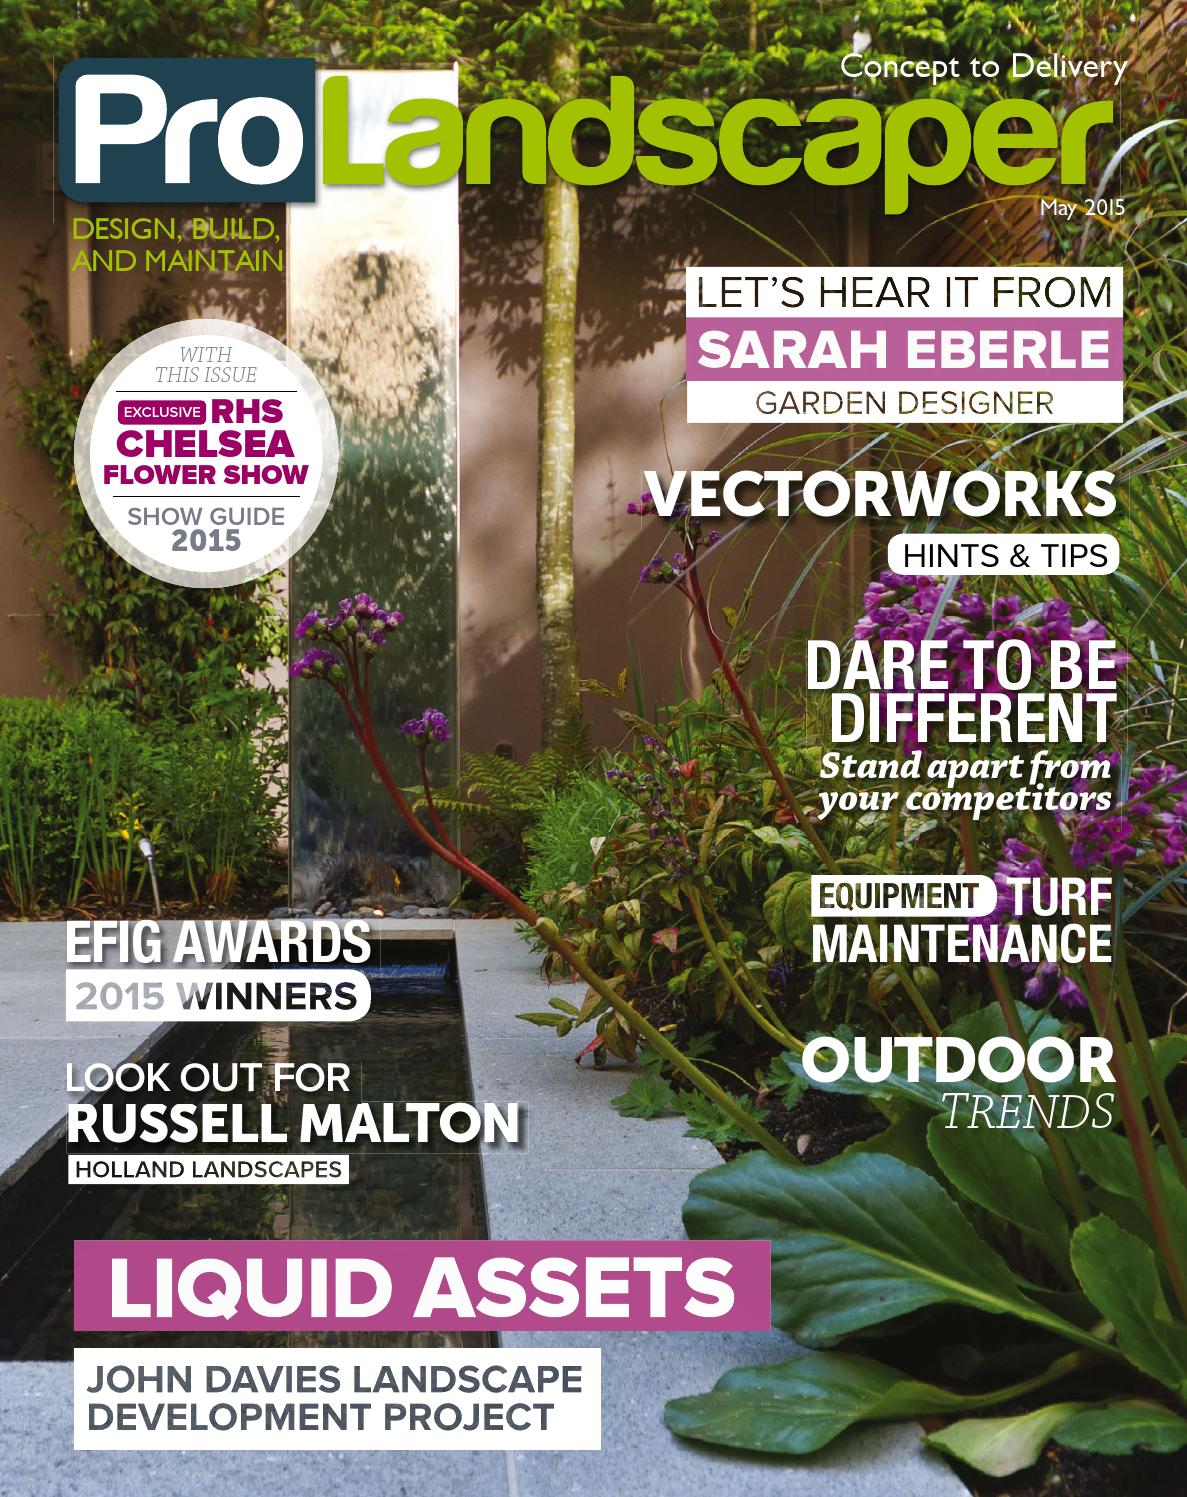 Pro Landscaper May 2015 by Eljays44 - issuu